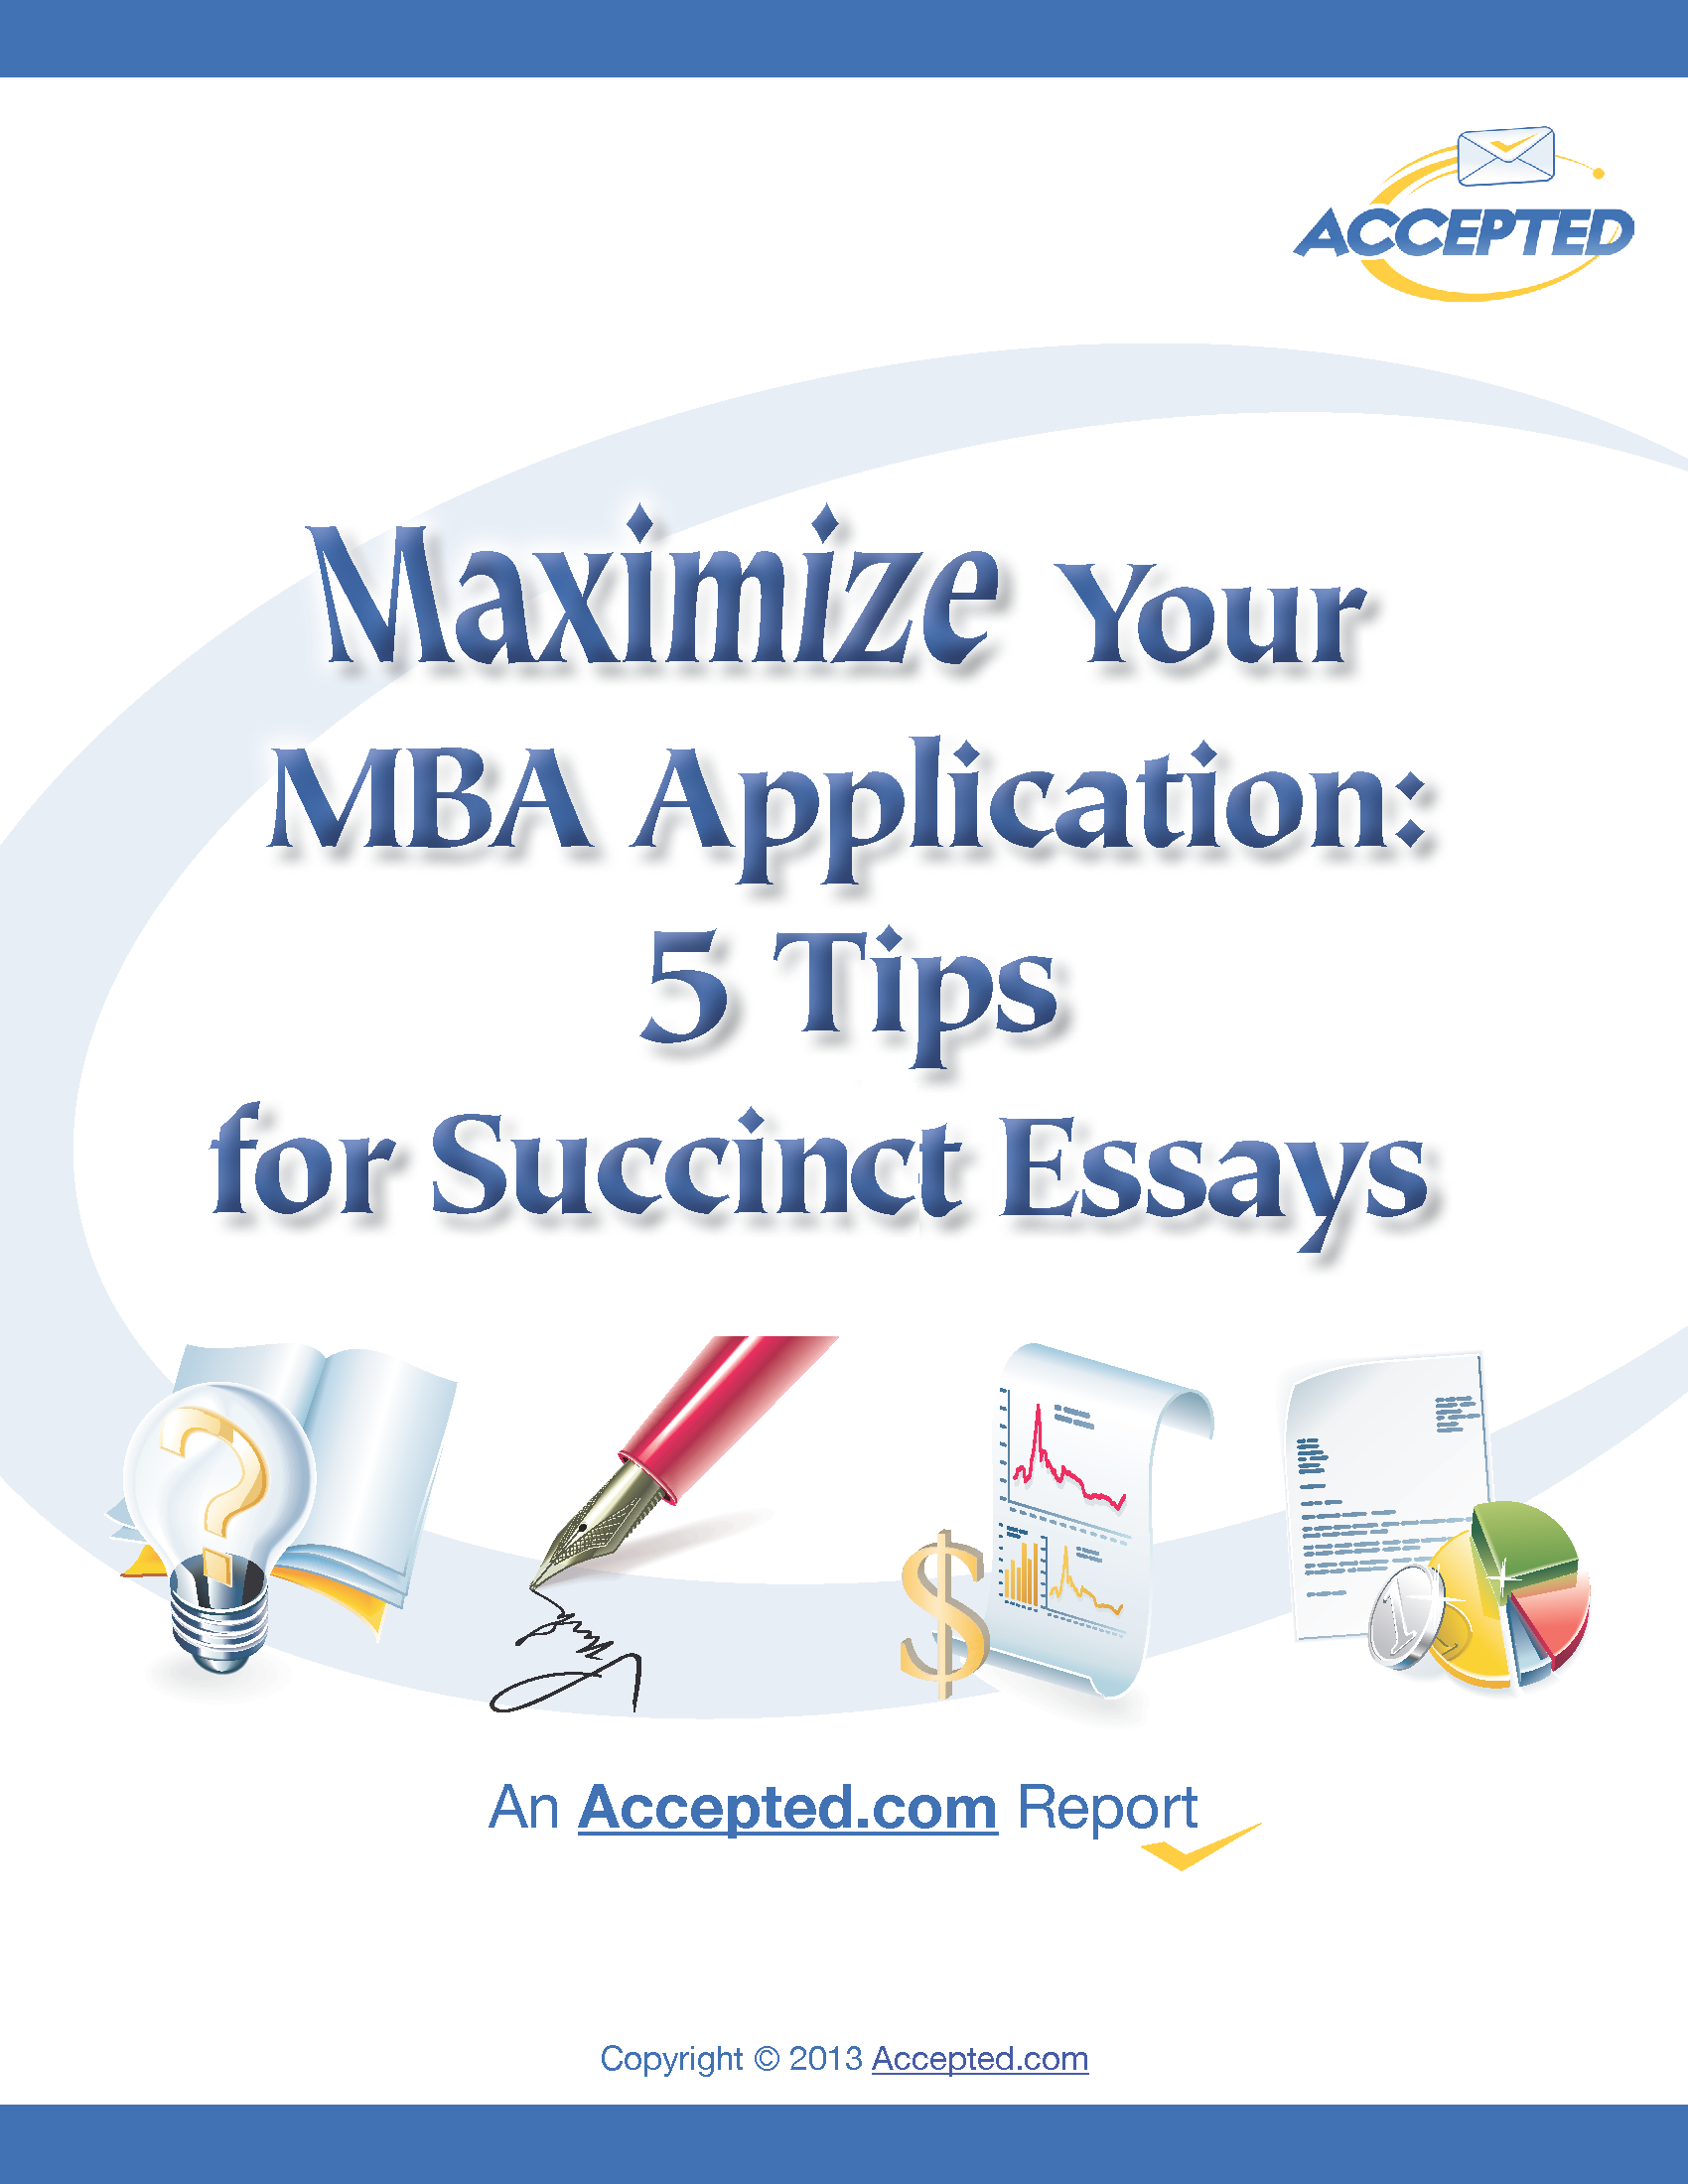 Mba essay questions answers